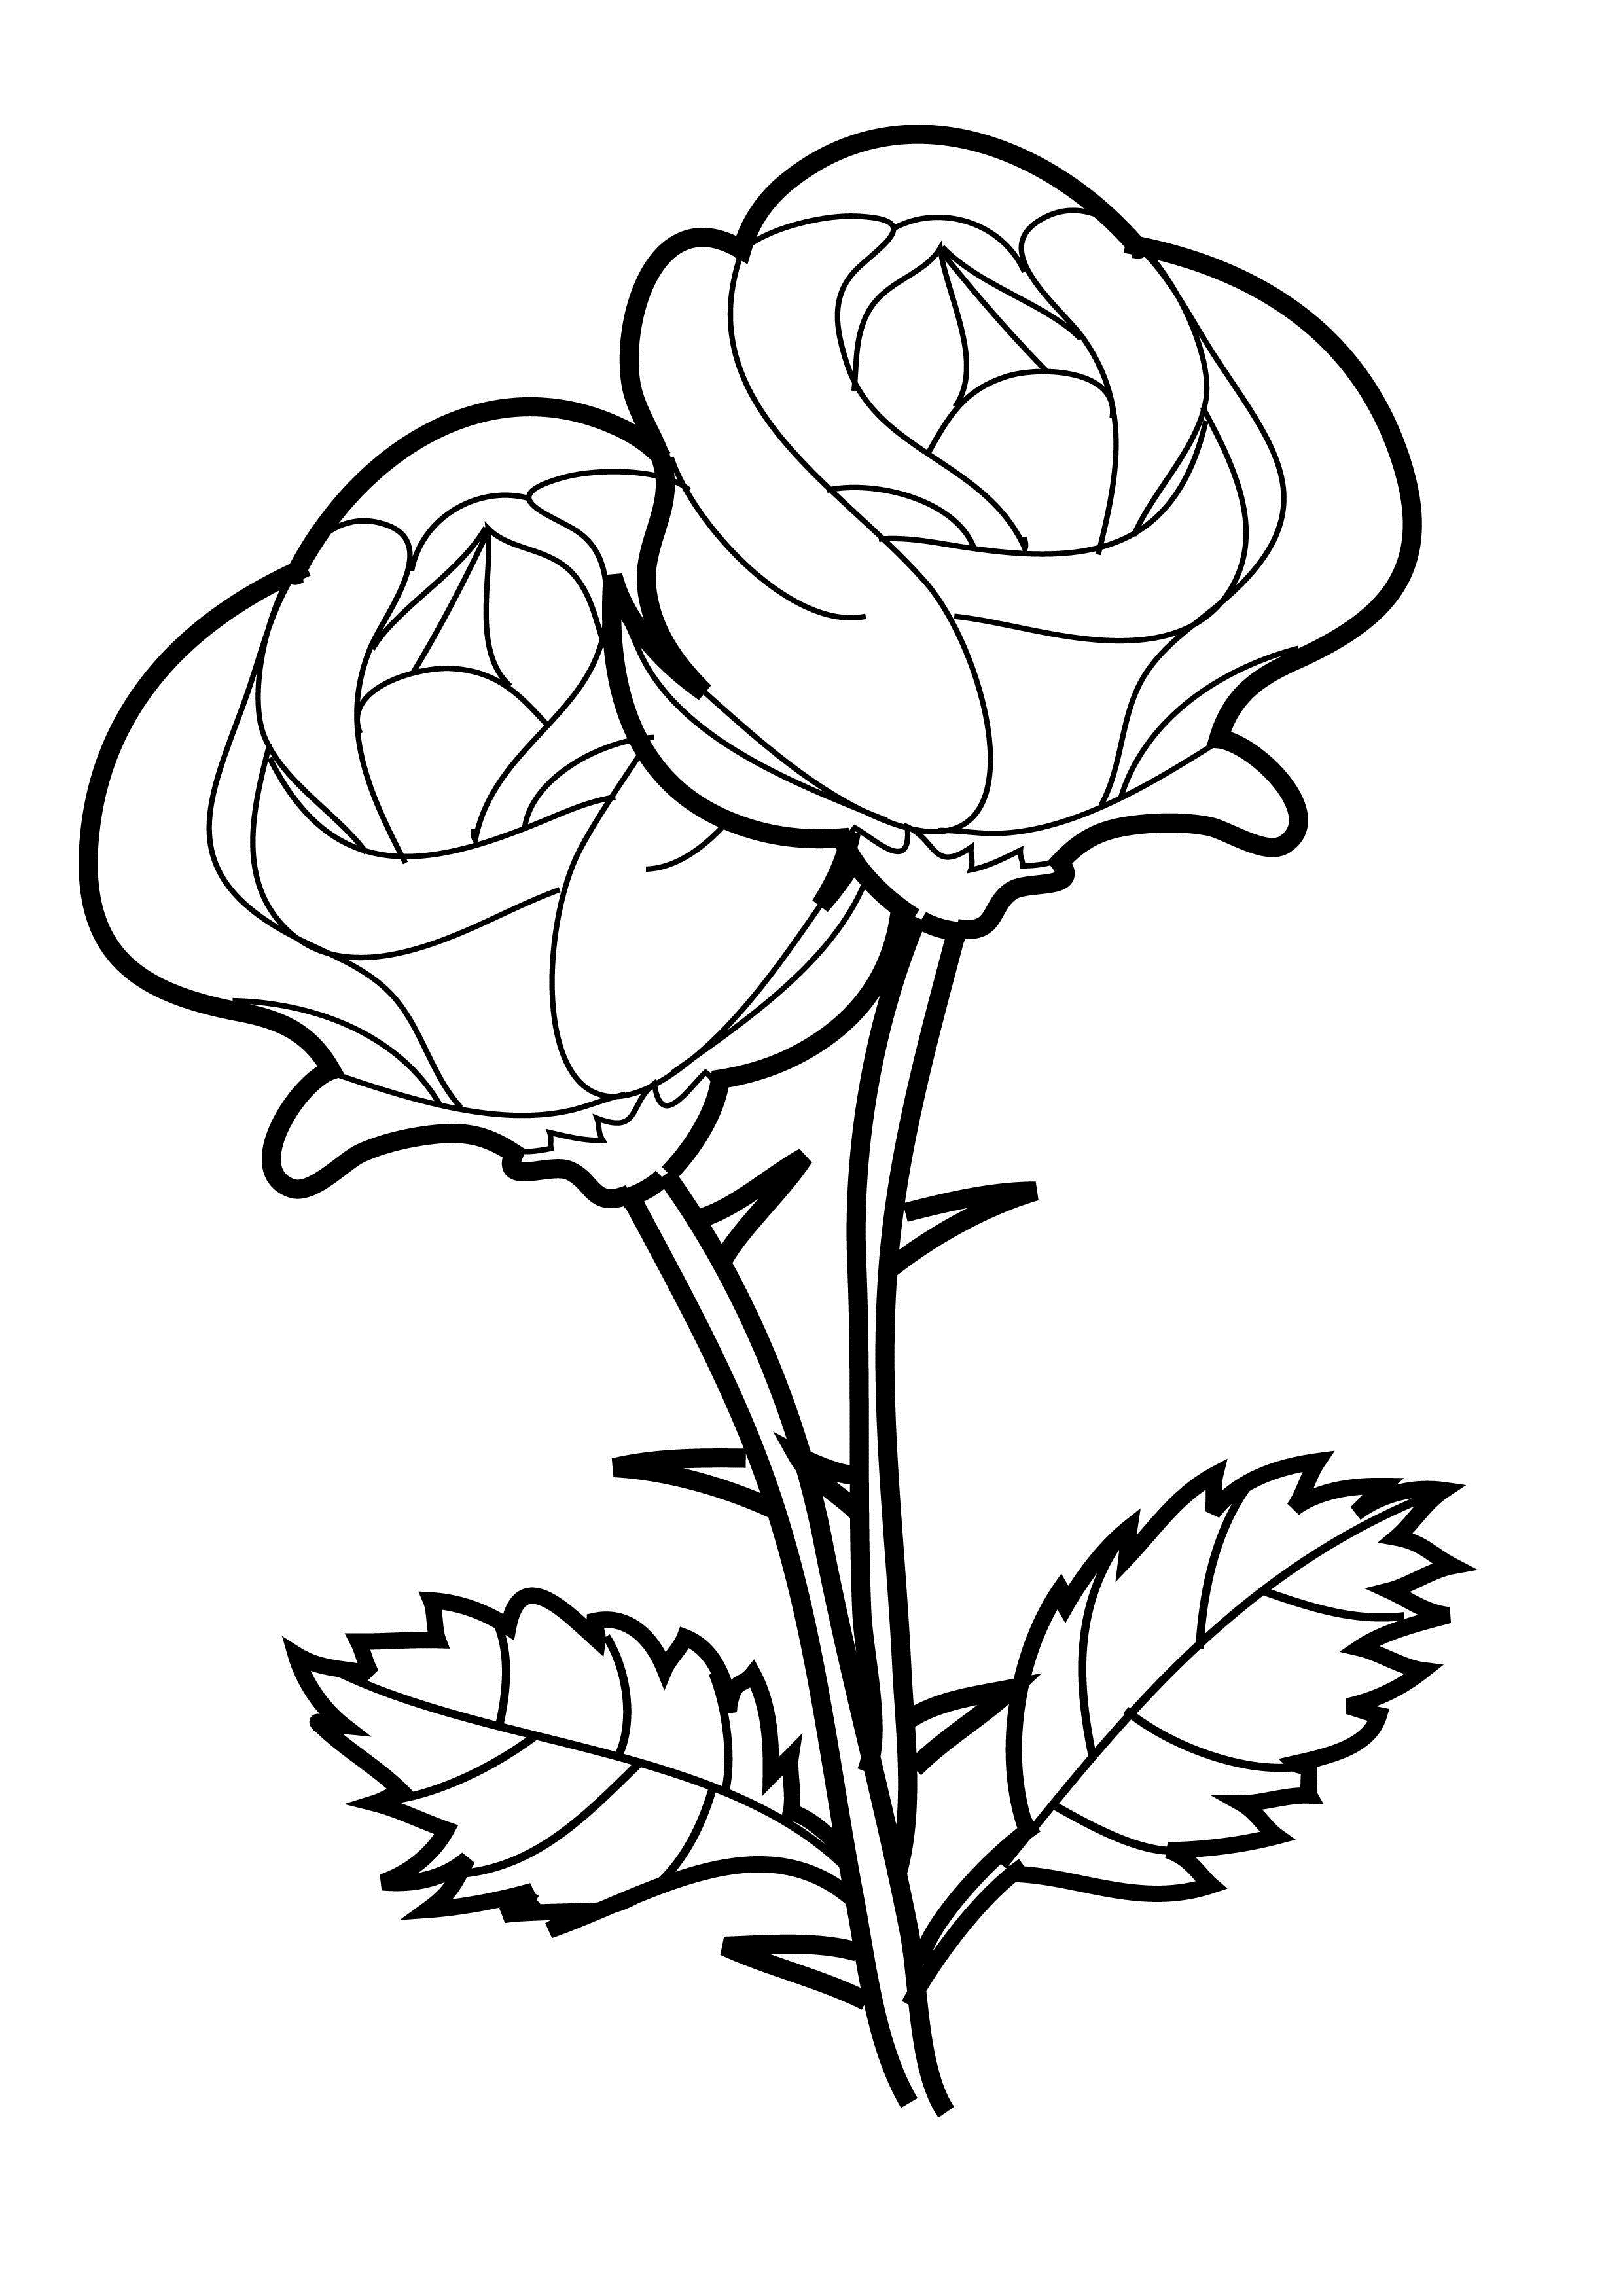 flowers to print out learn about flowers by coloring worksheets printables print out flowers to